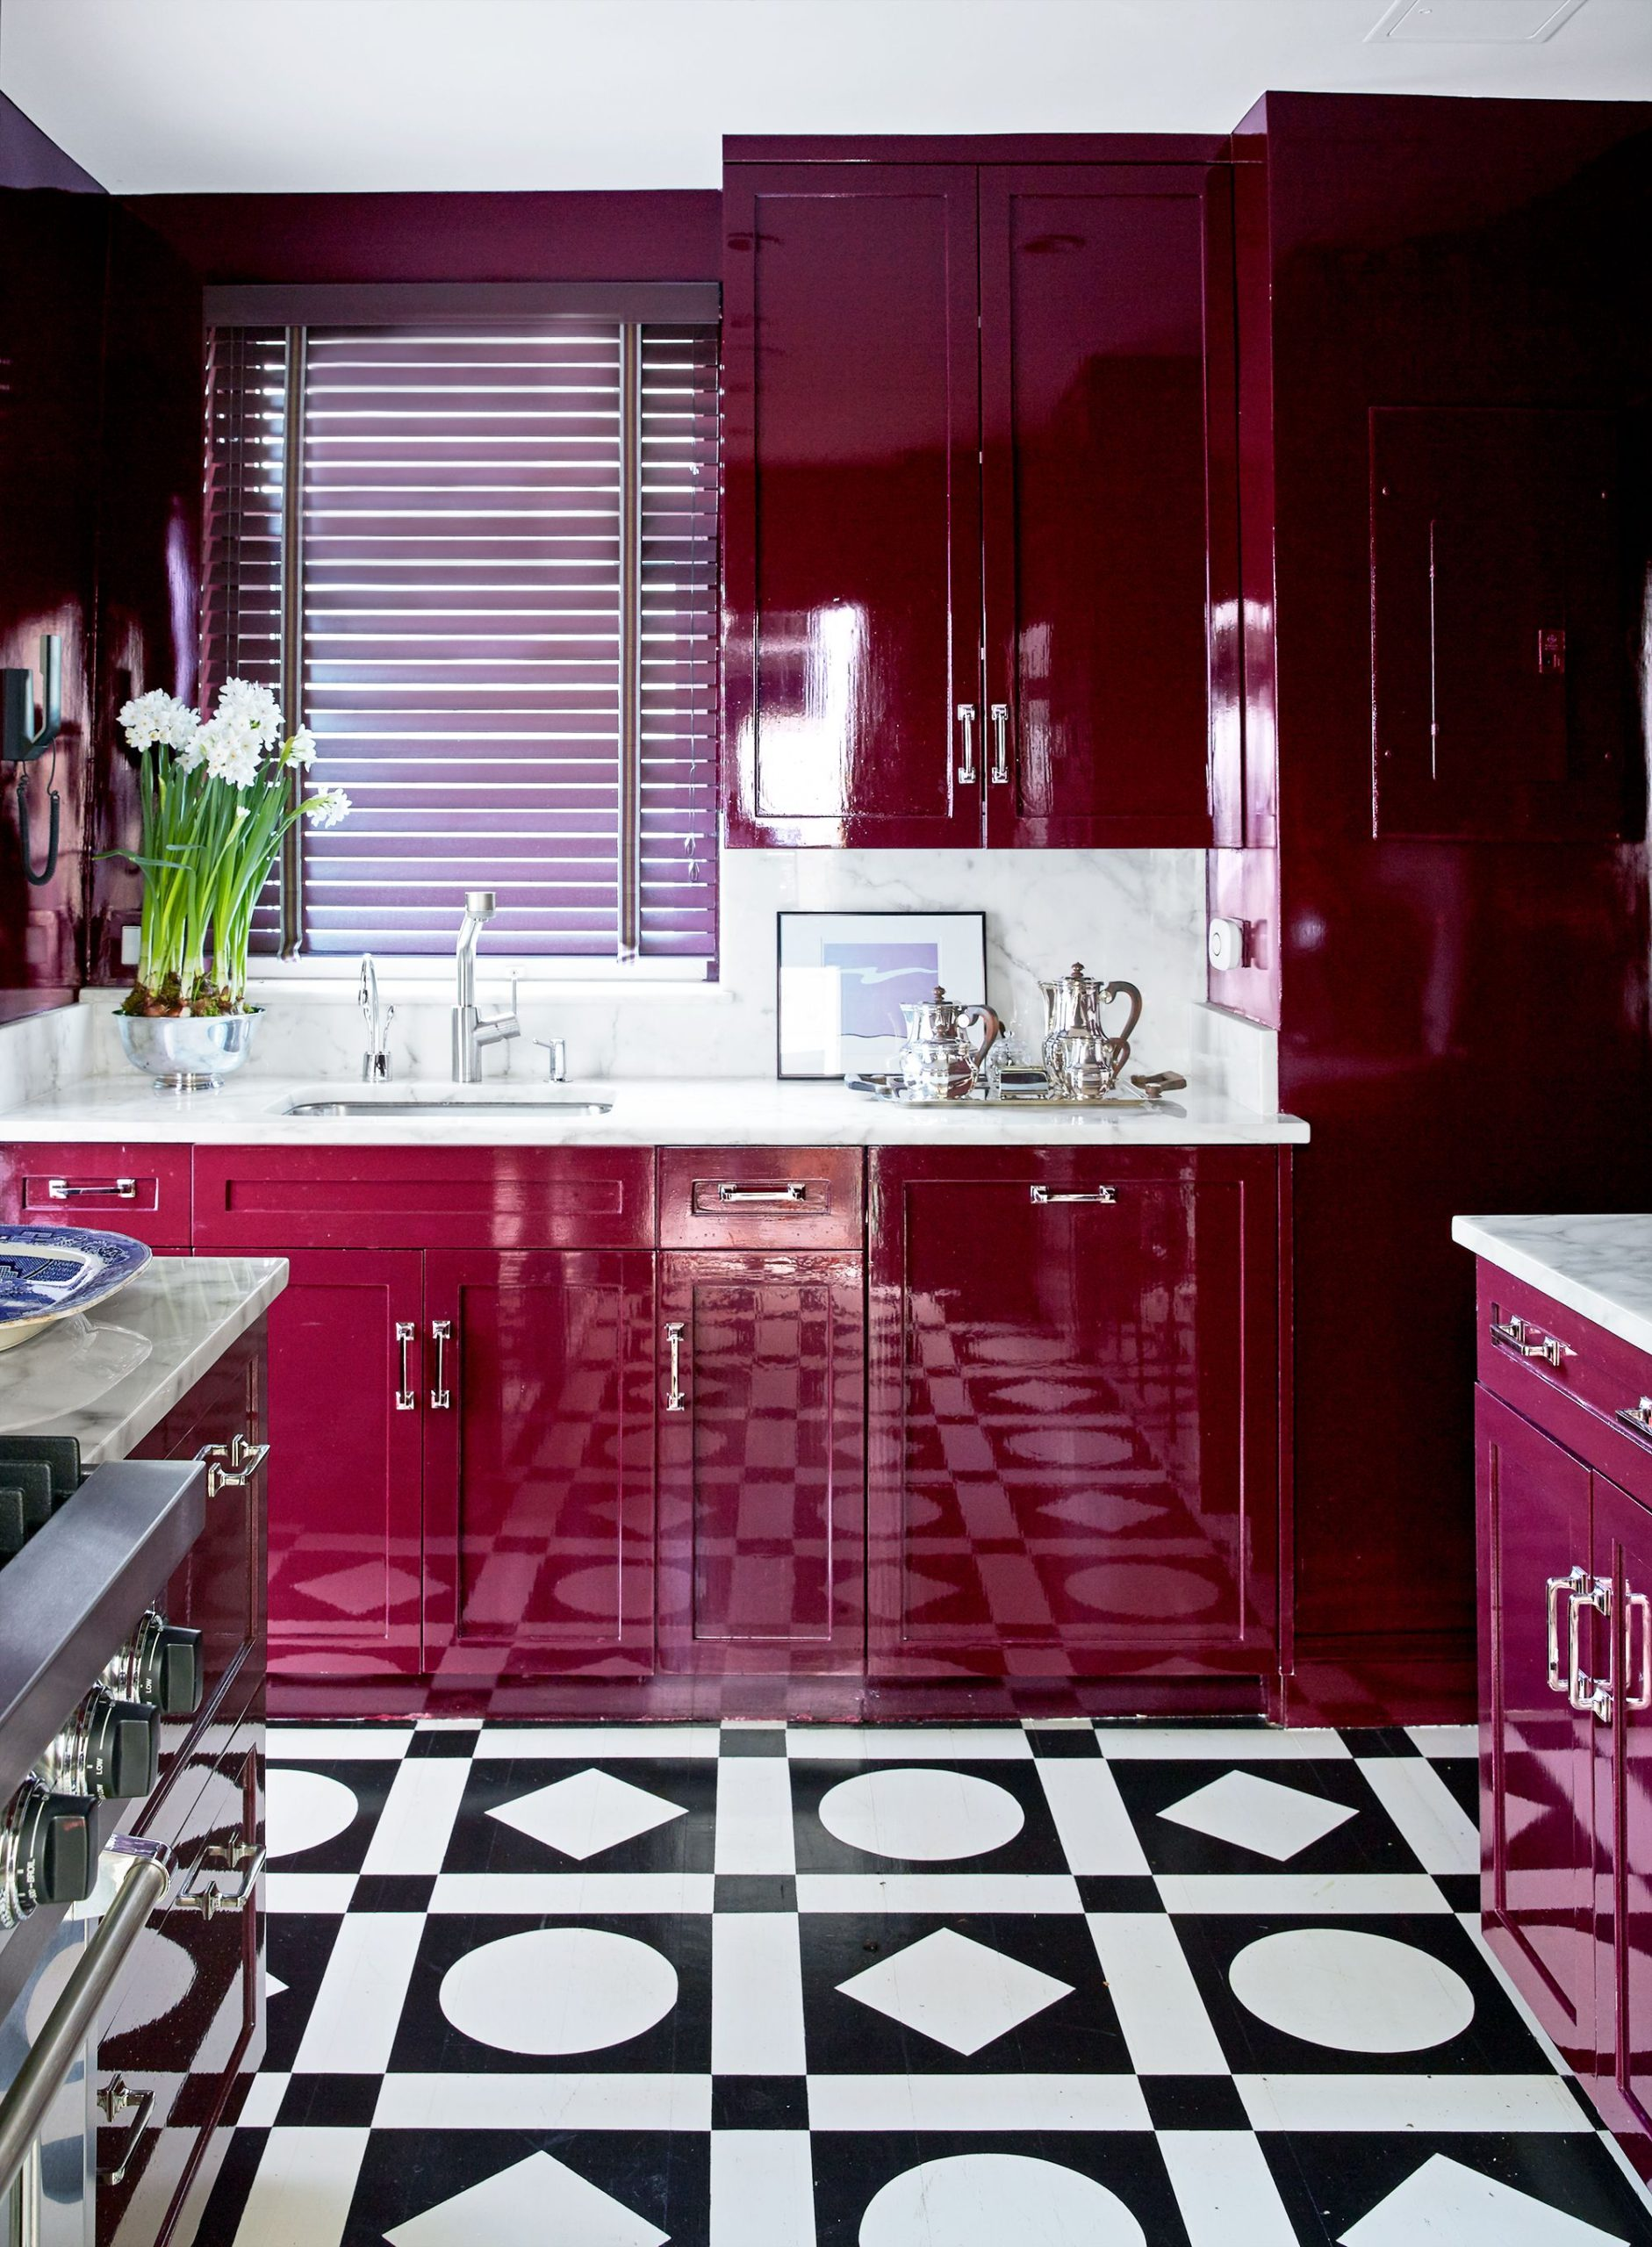 glossy-colors-in-kitchen-scaled 80+ Unusual Kitchen Design Ideas for Small Spaces in 2021